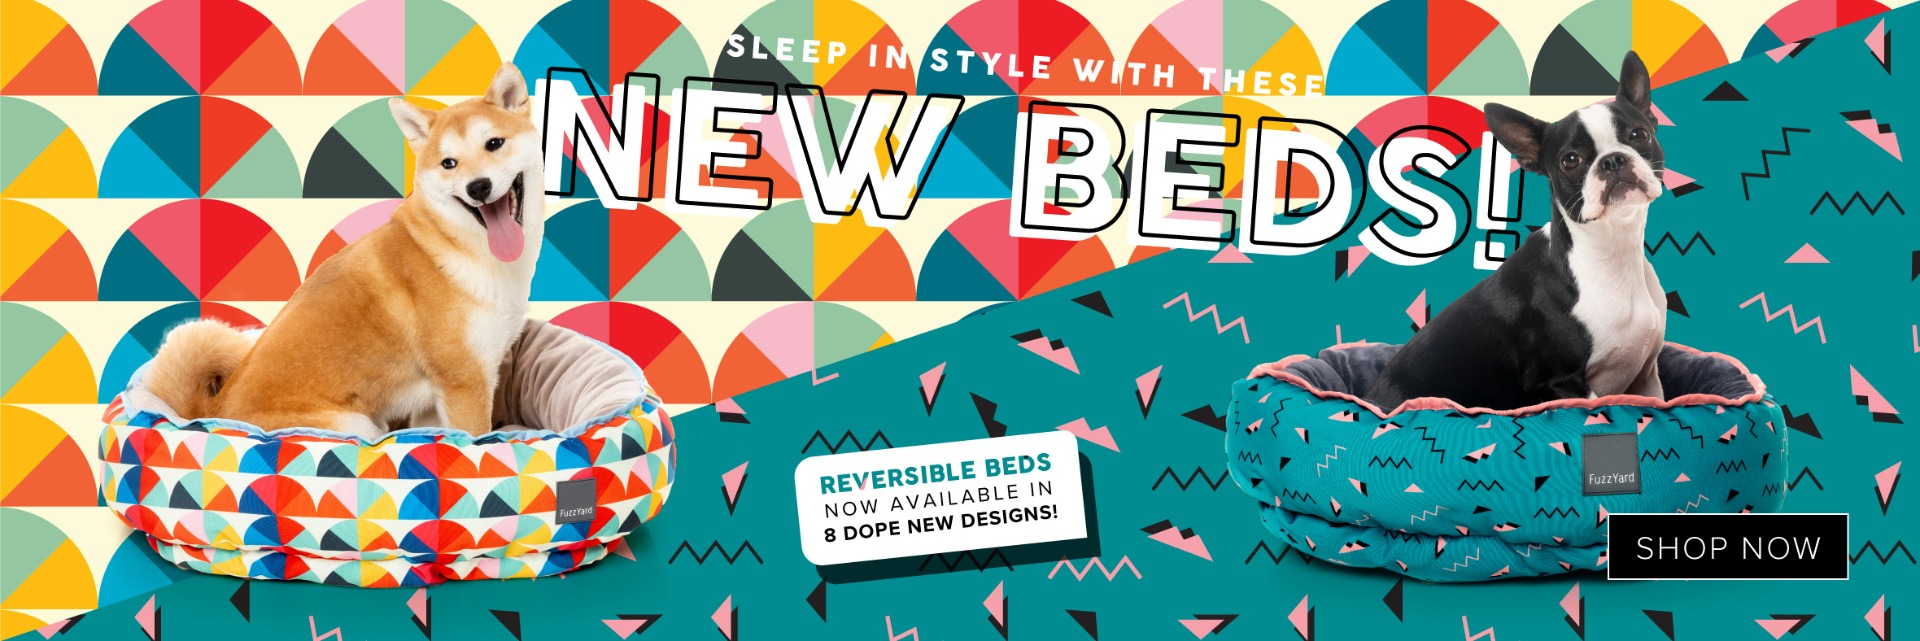 New Reversible Beds